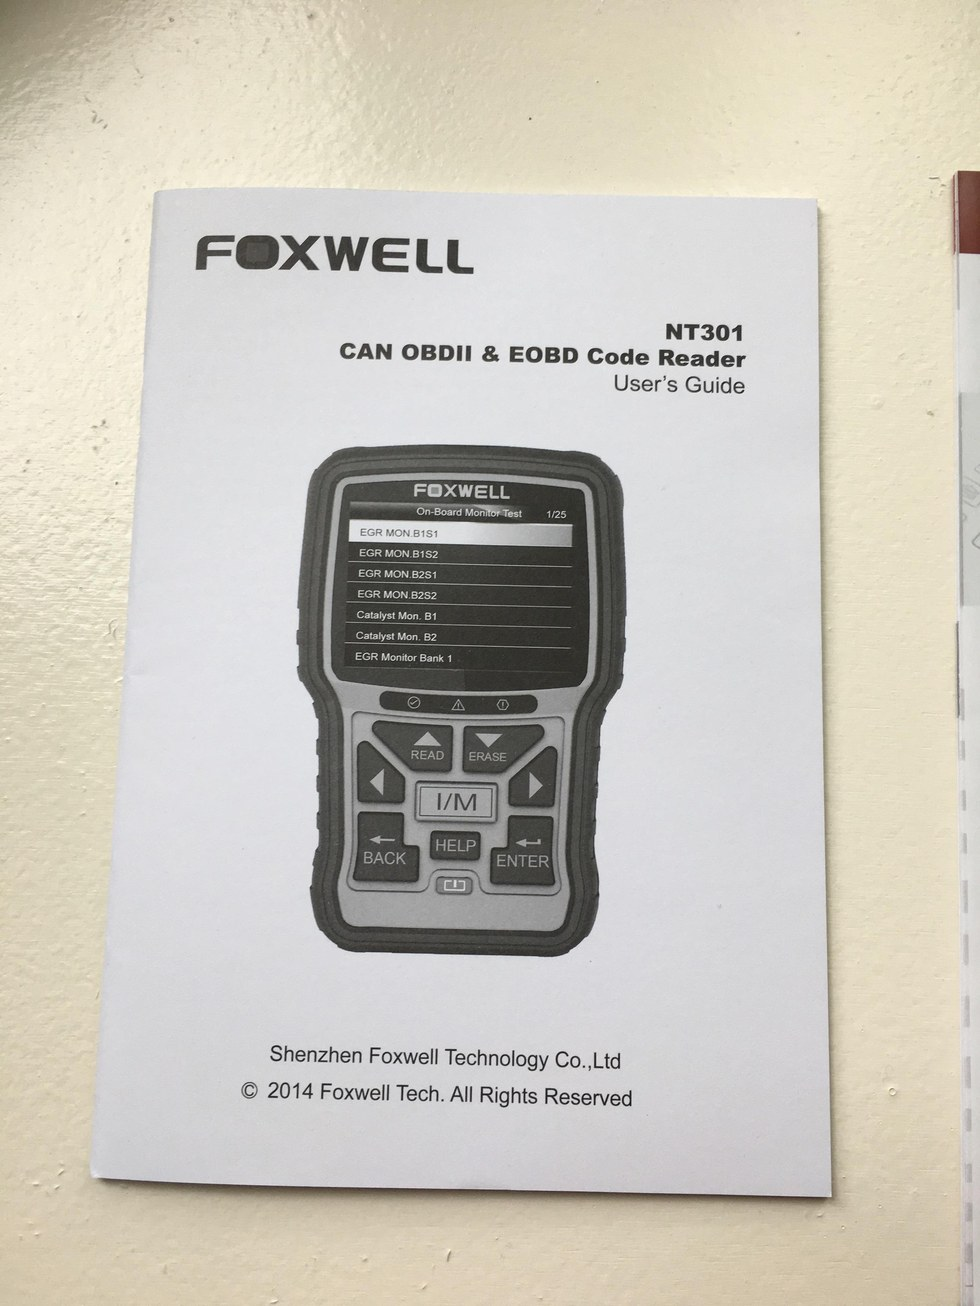 Foxwell NT301 OBD2 Code Reader User Guide